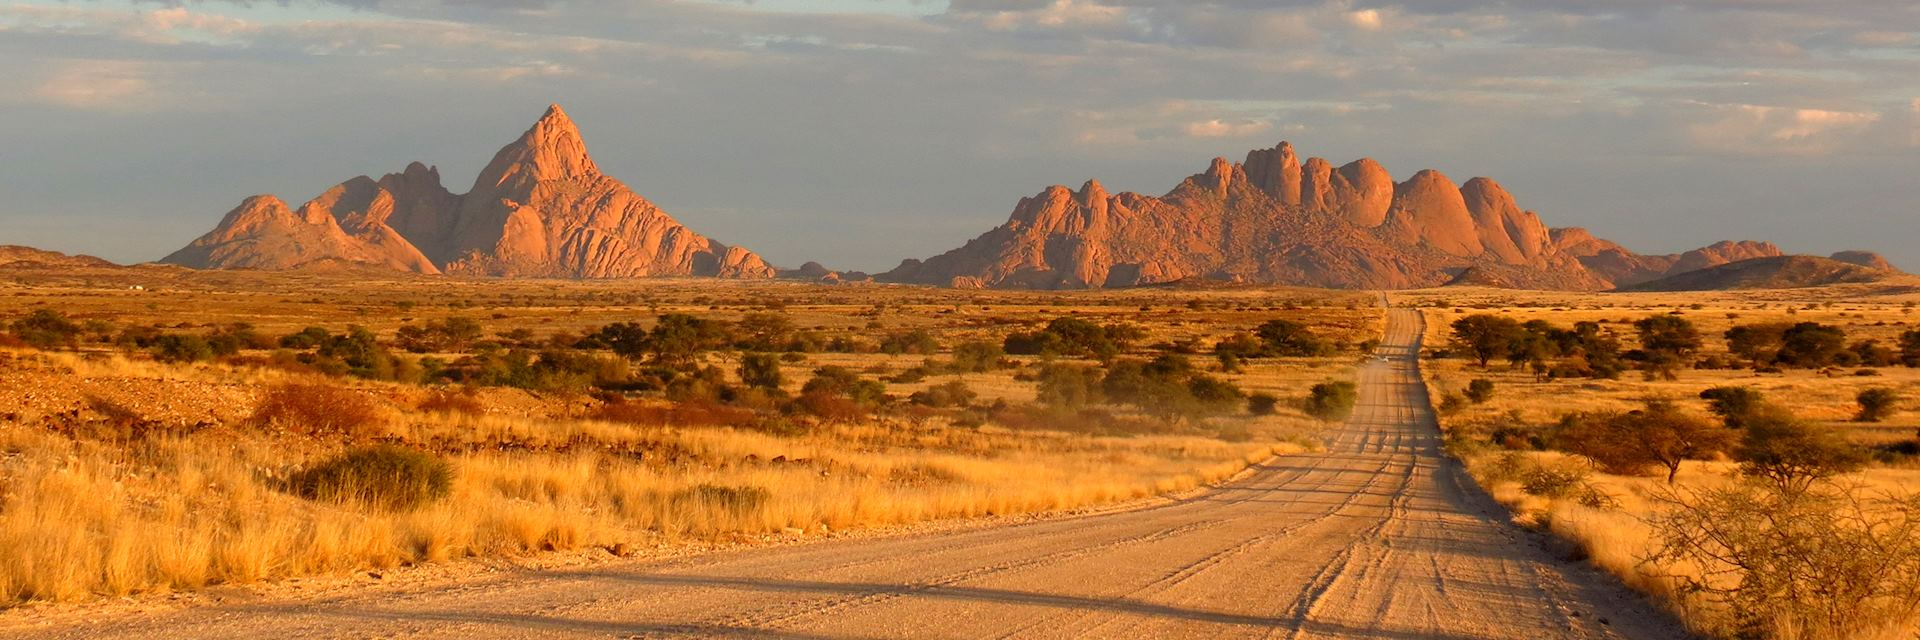 Driving in Spitzkoppe, Namibia